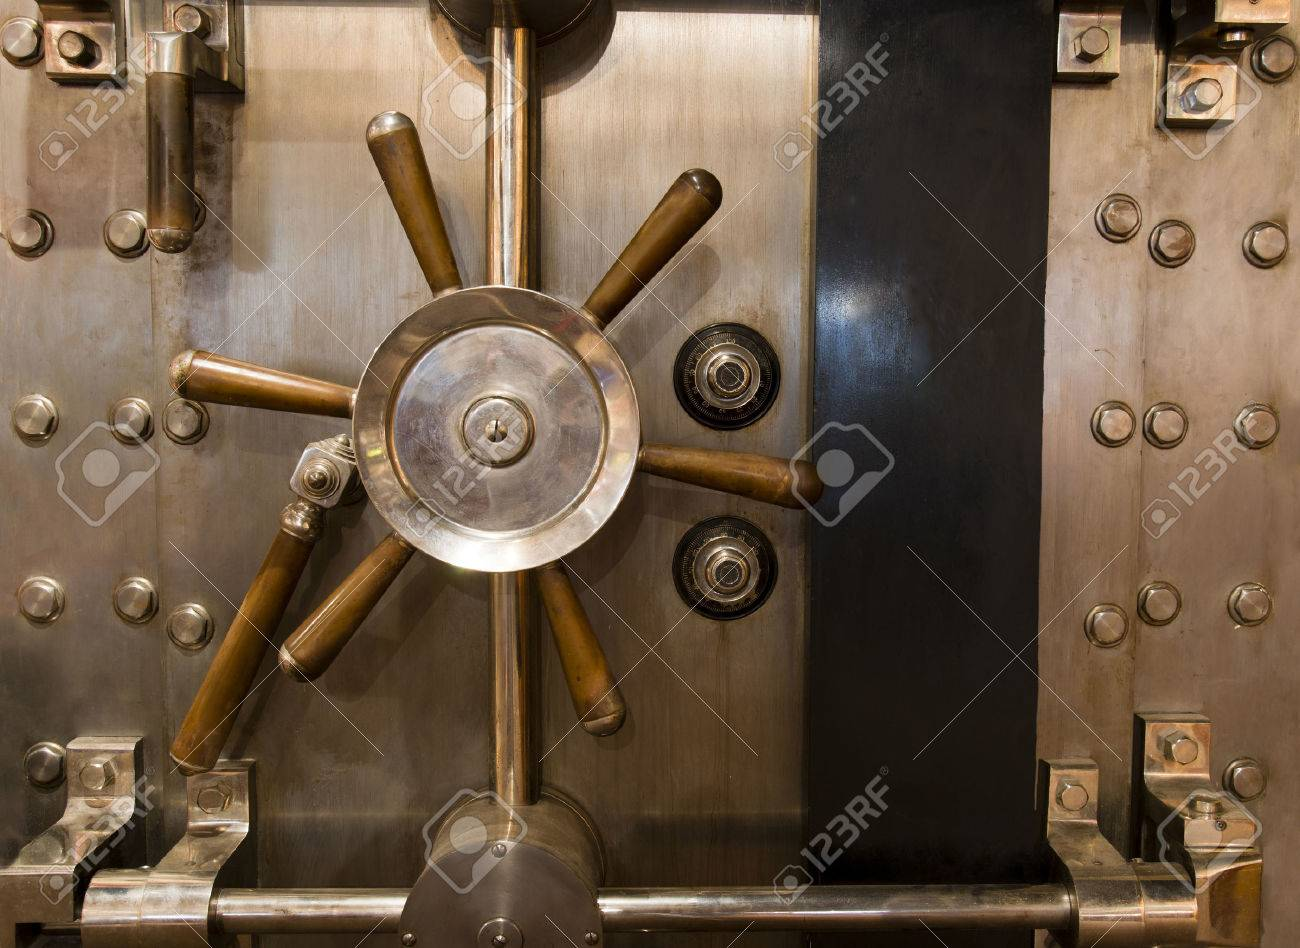 Locked bank vault door in retail store Stock Photo - 22763633 - Locked Bank Vault Door In Retail Store Stock Photo, Picture And